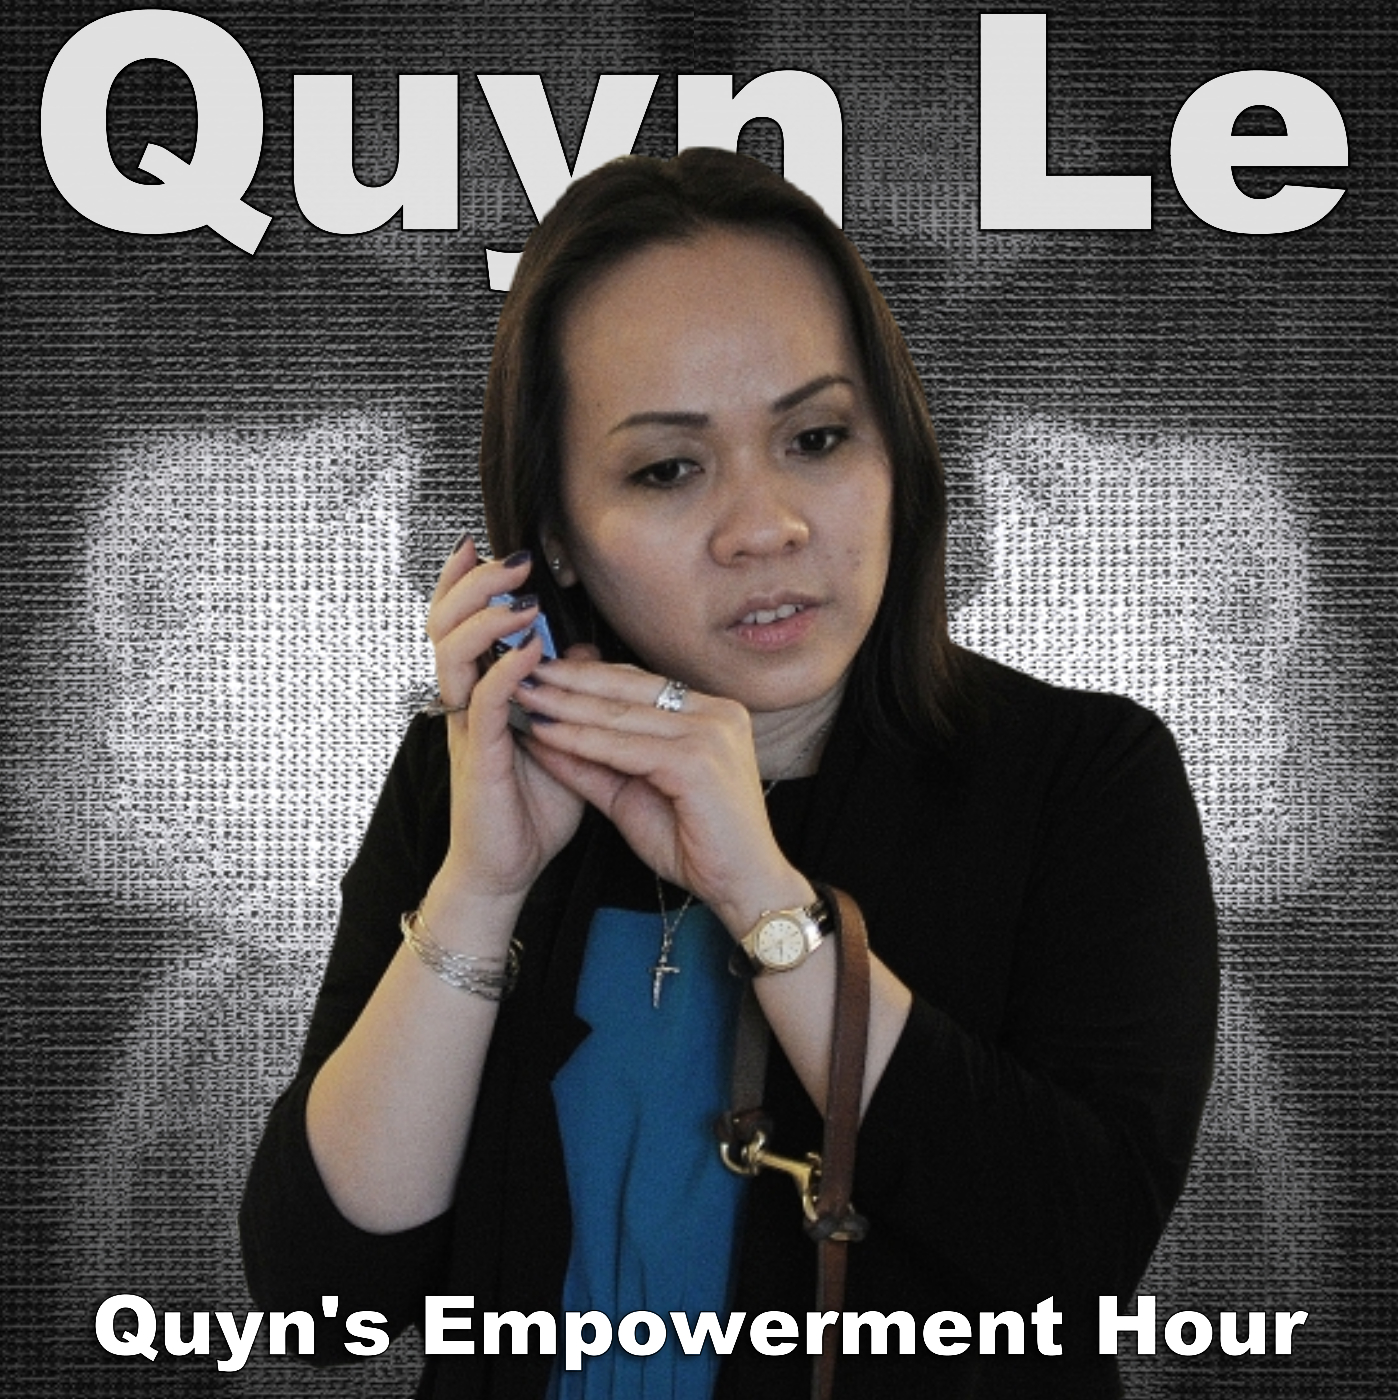 Quyns Empowerment Hour with Quyn Le